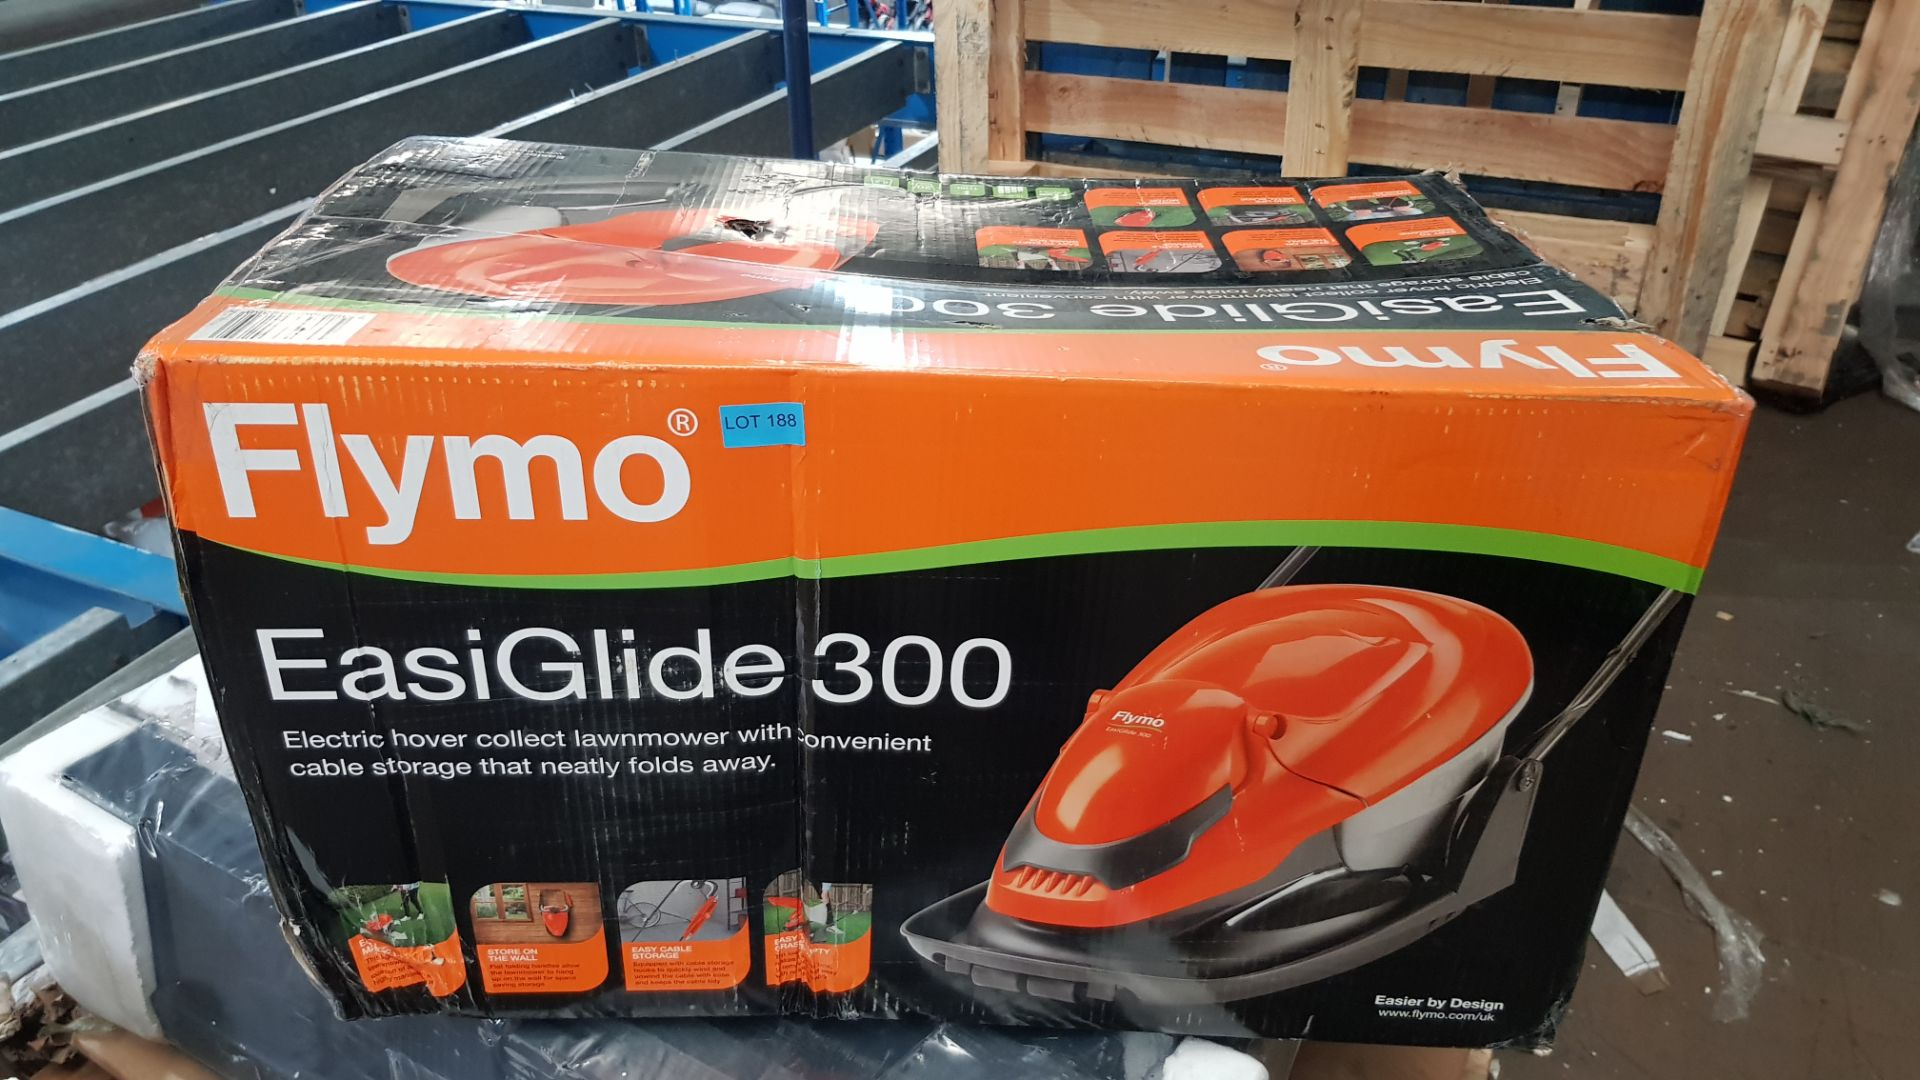 (P6) 1x Flymo EasiGlide 300 Hover Collect Lawnmower RRP £99. New Item – Damage To Box. - Image 3 of 4